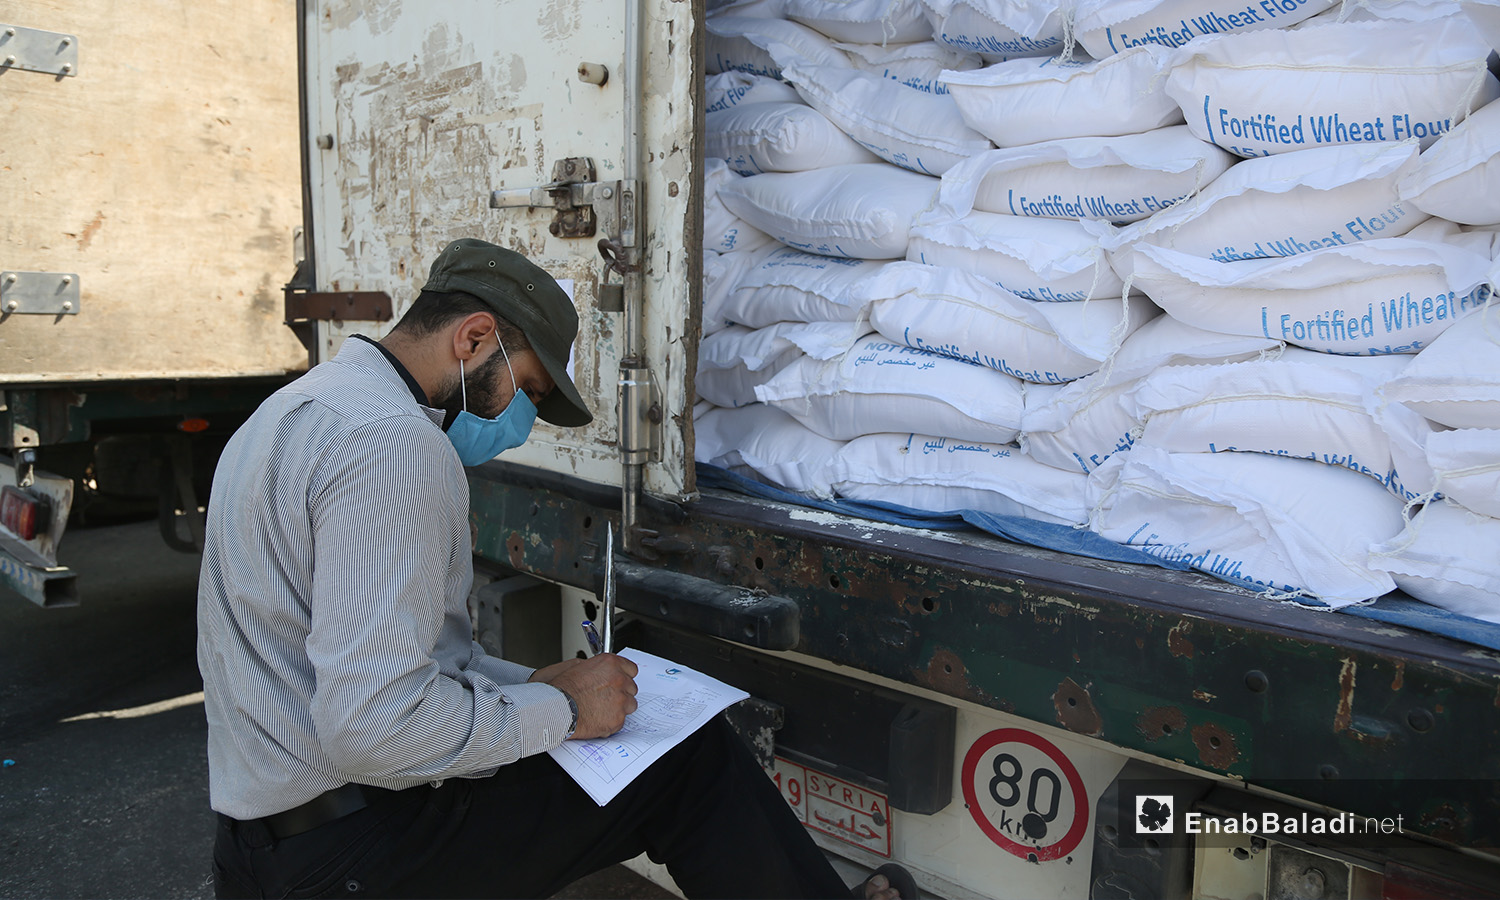 Employee at Bab al-Hawa Border Crossing between Syria and Turkey counting aid items delivered to Syria —18 September 2020 (Enab Baladi / Youssef Ghuraibi)